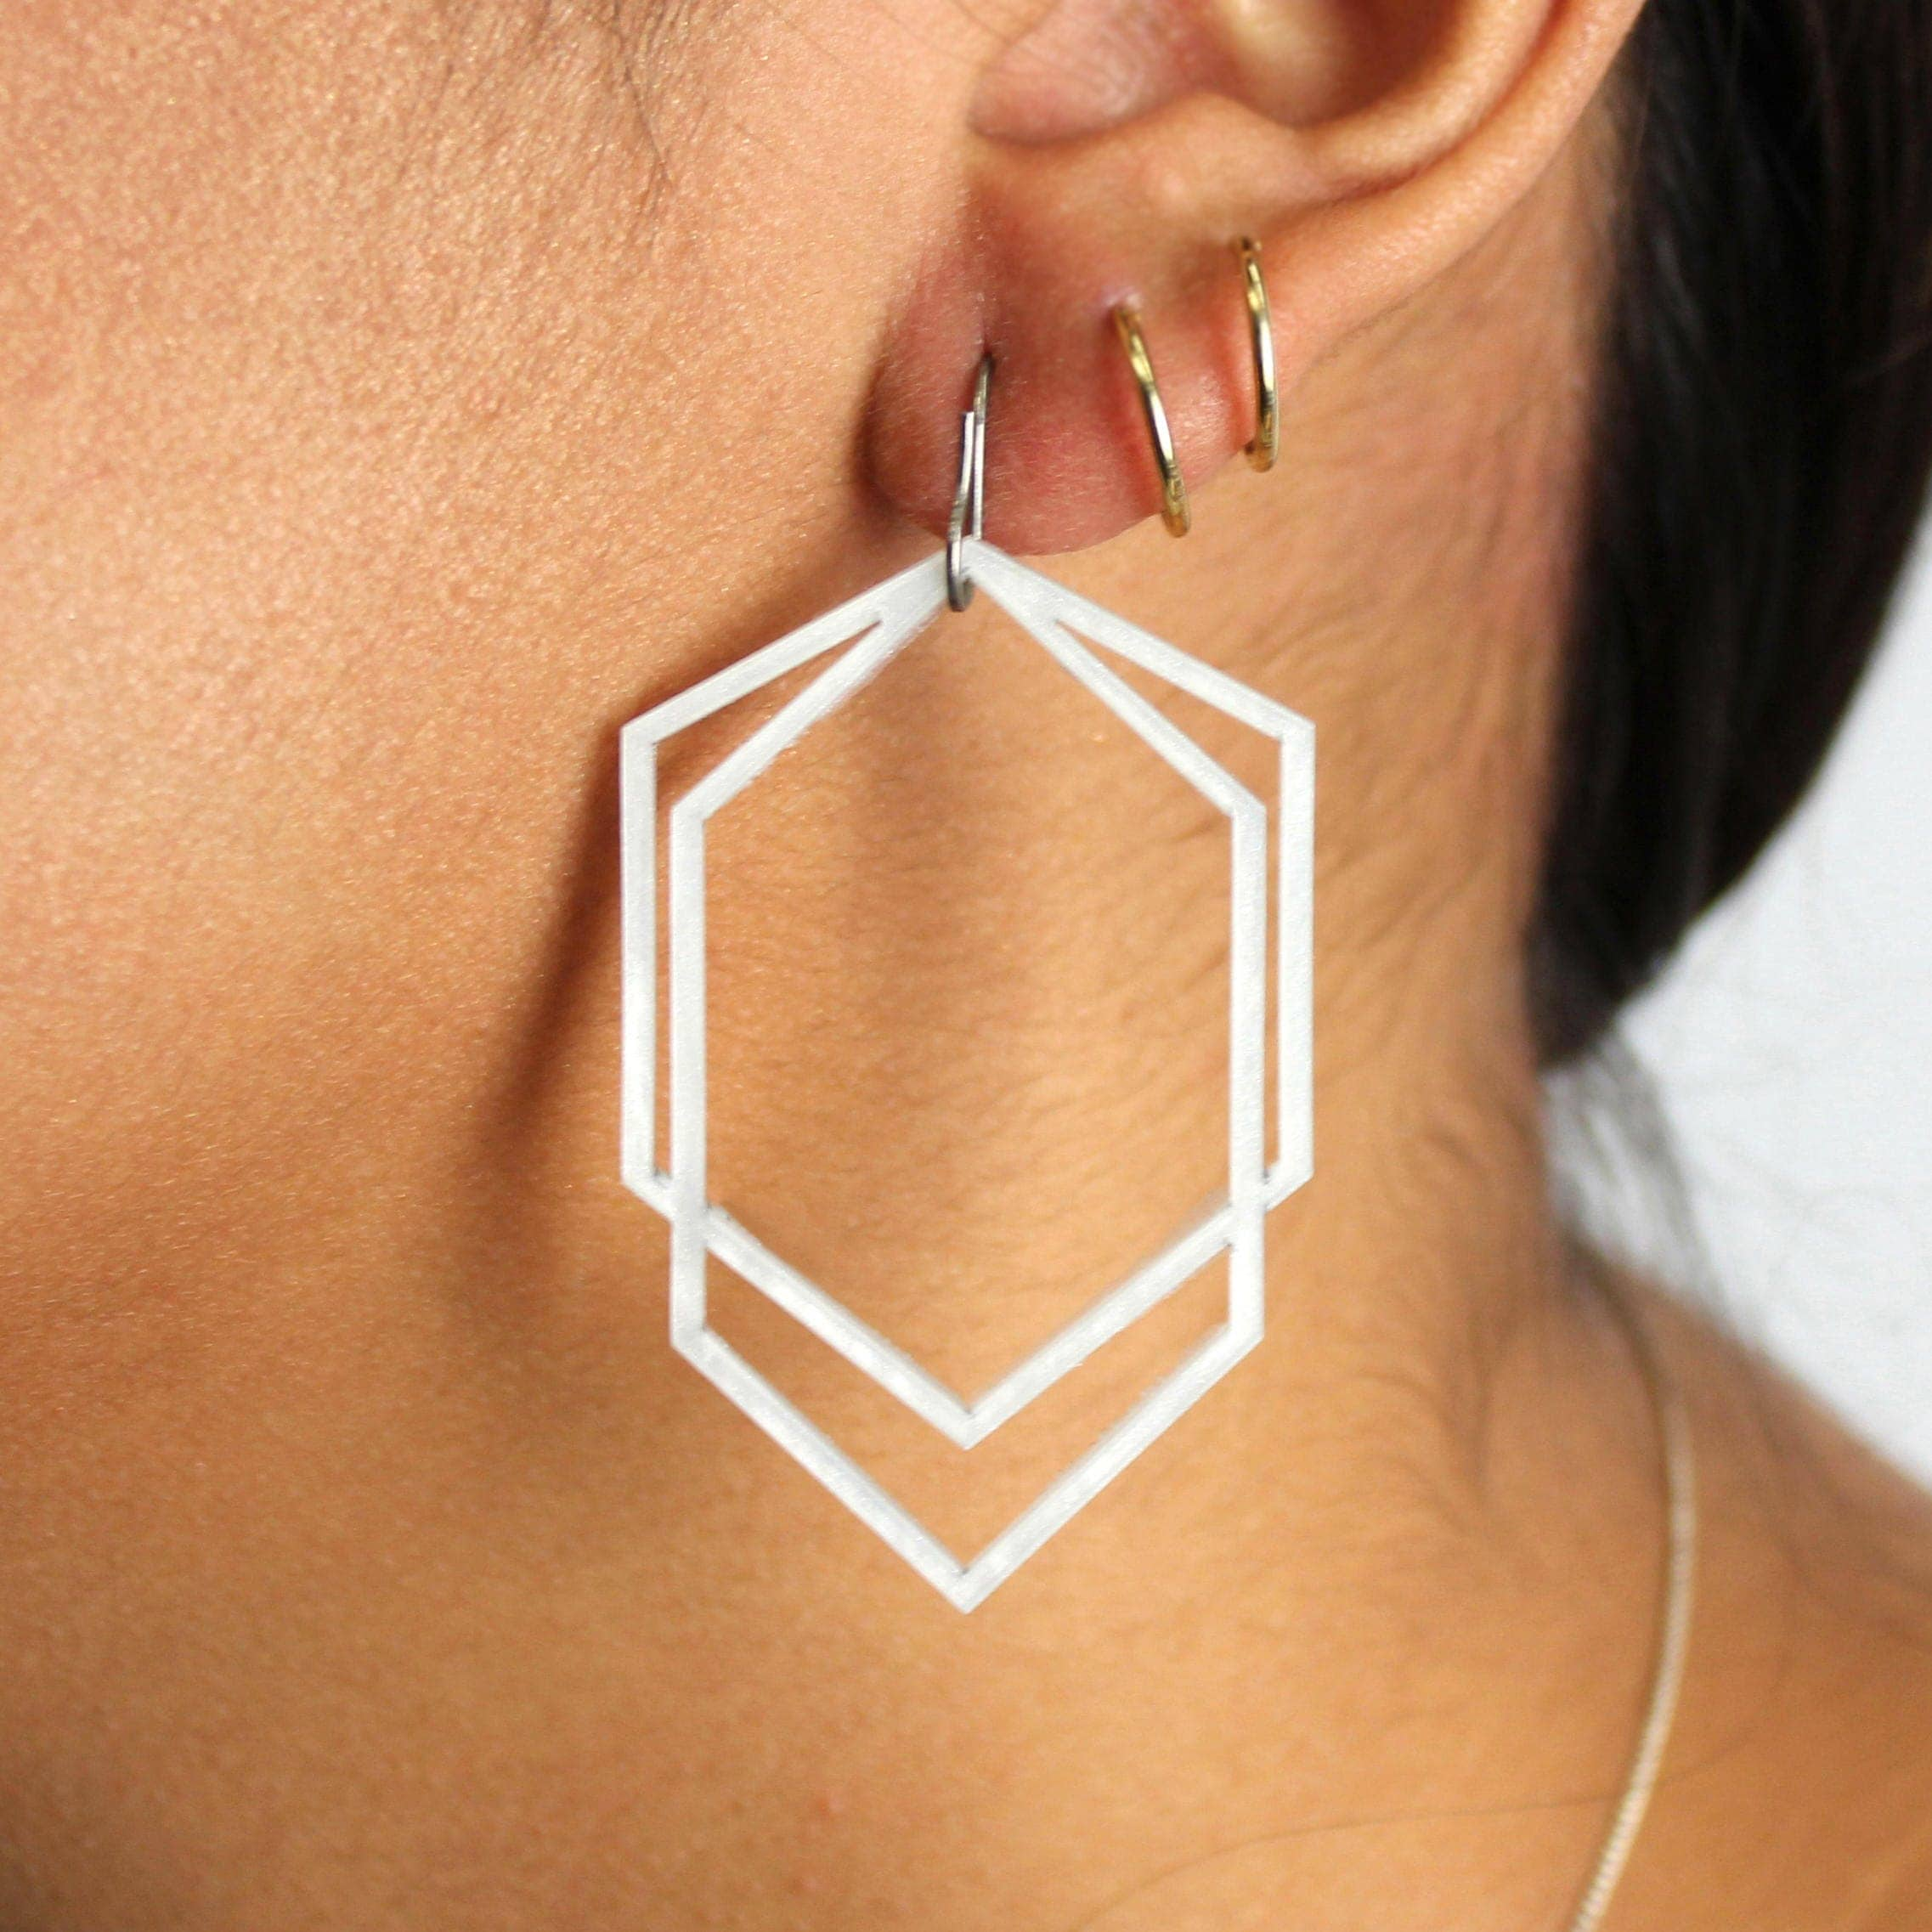 earrings hexagon newport hexagonhowlitedropearrings edge howlite products